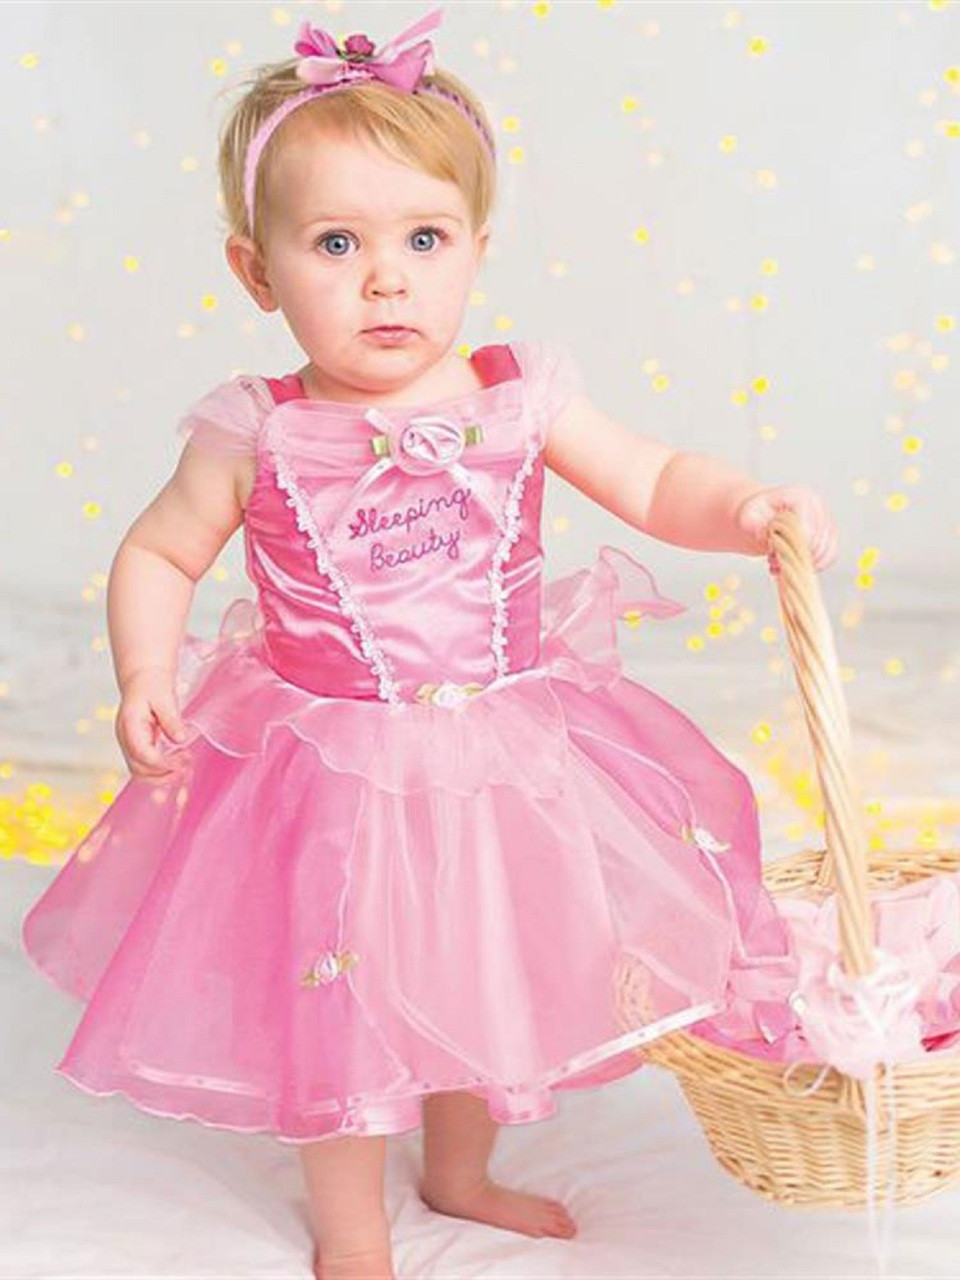 c0e58c3e4 Baby Official Sleeping Beauty Fancy Dress Costume. Previous. Image 1